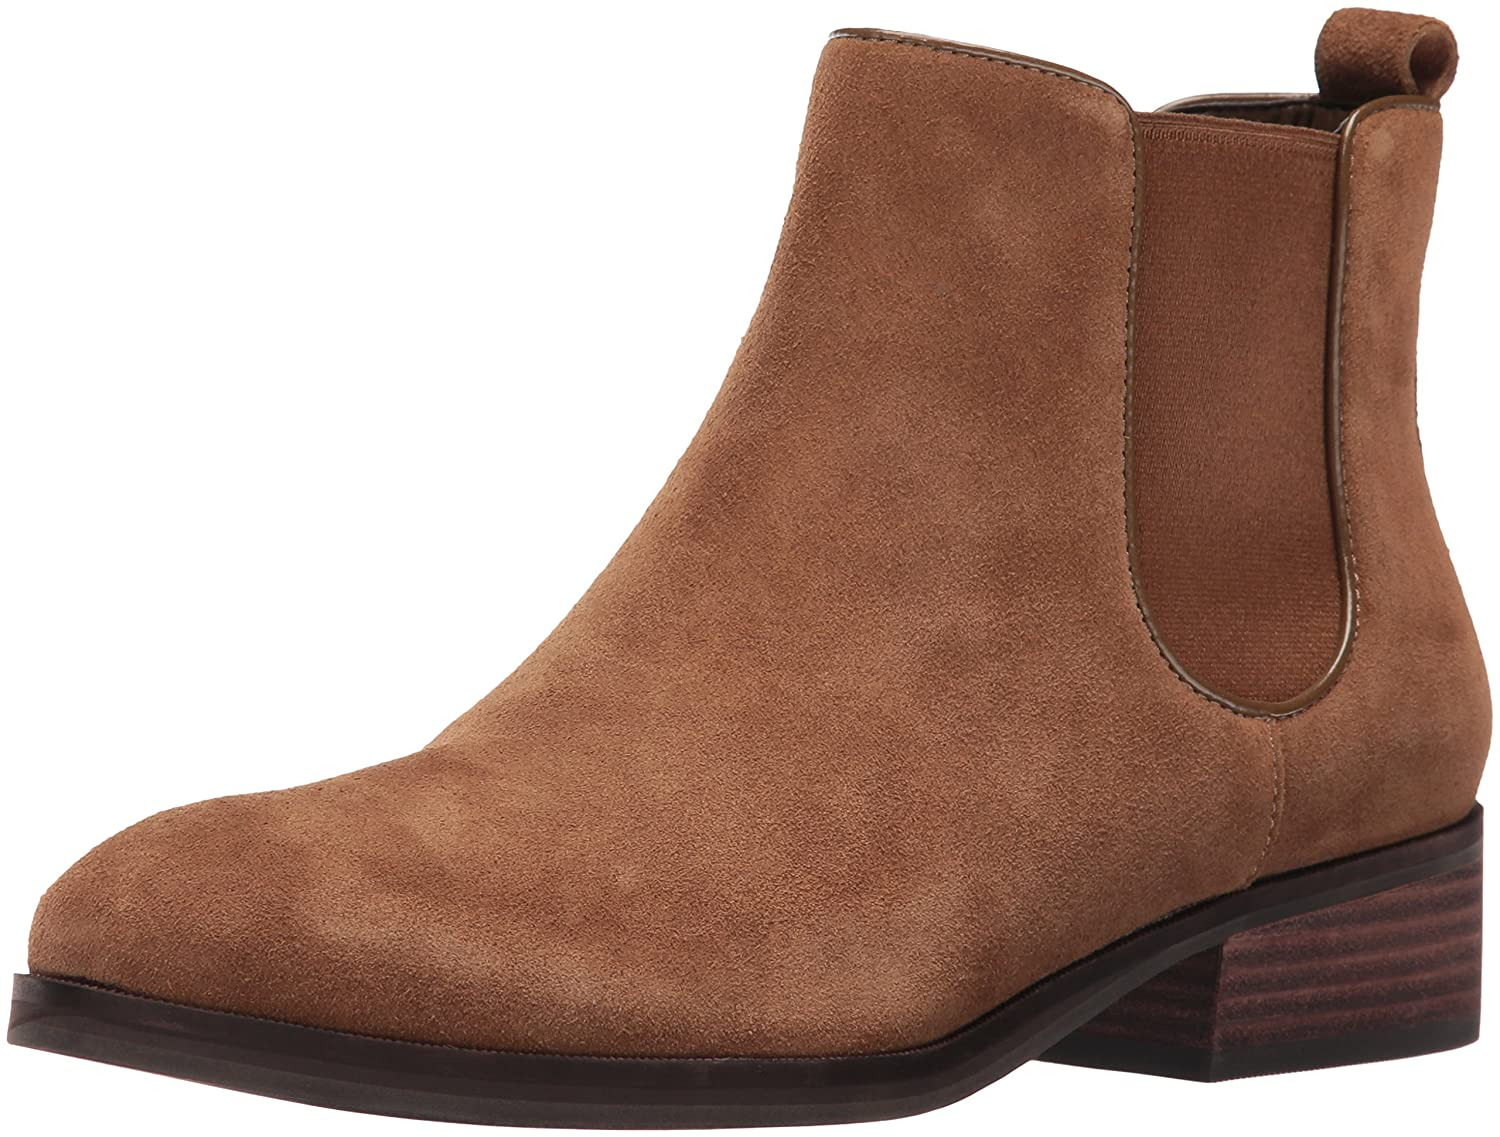 Cole Haan Women's Landsman Bootie Ii Ankle Boot B01HEK4FWC 5 B(M) US|Olive Suede